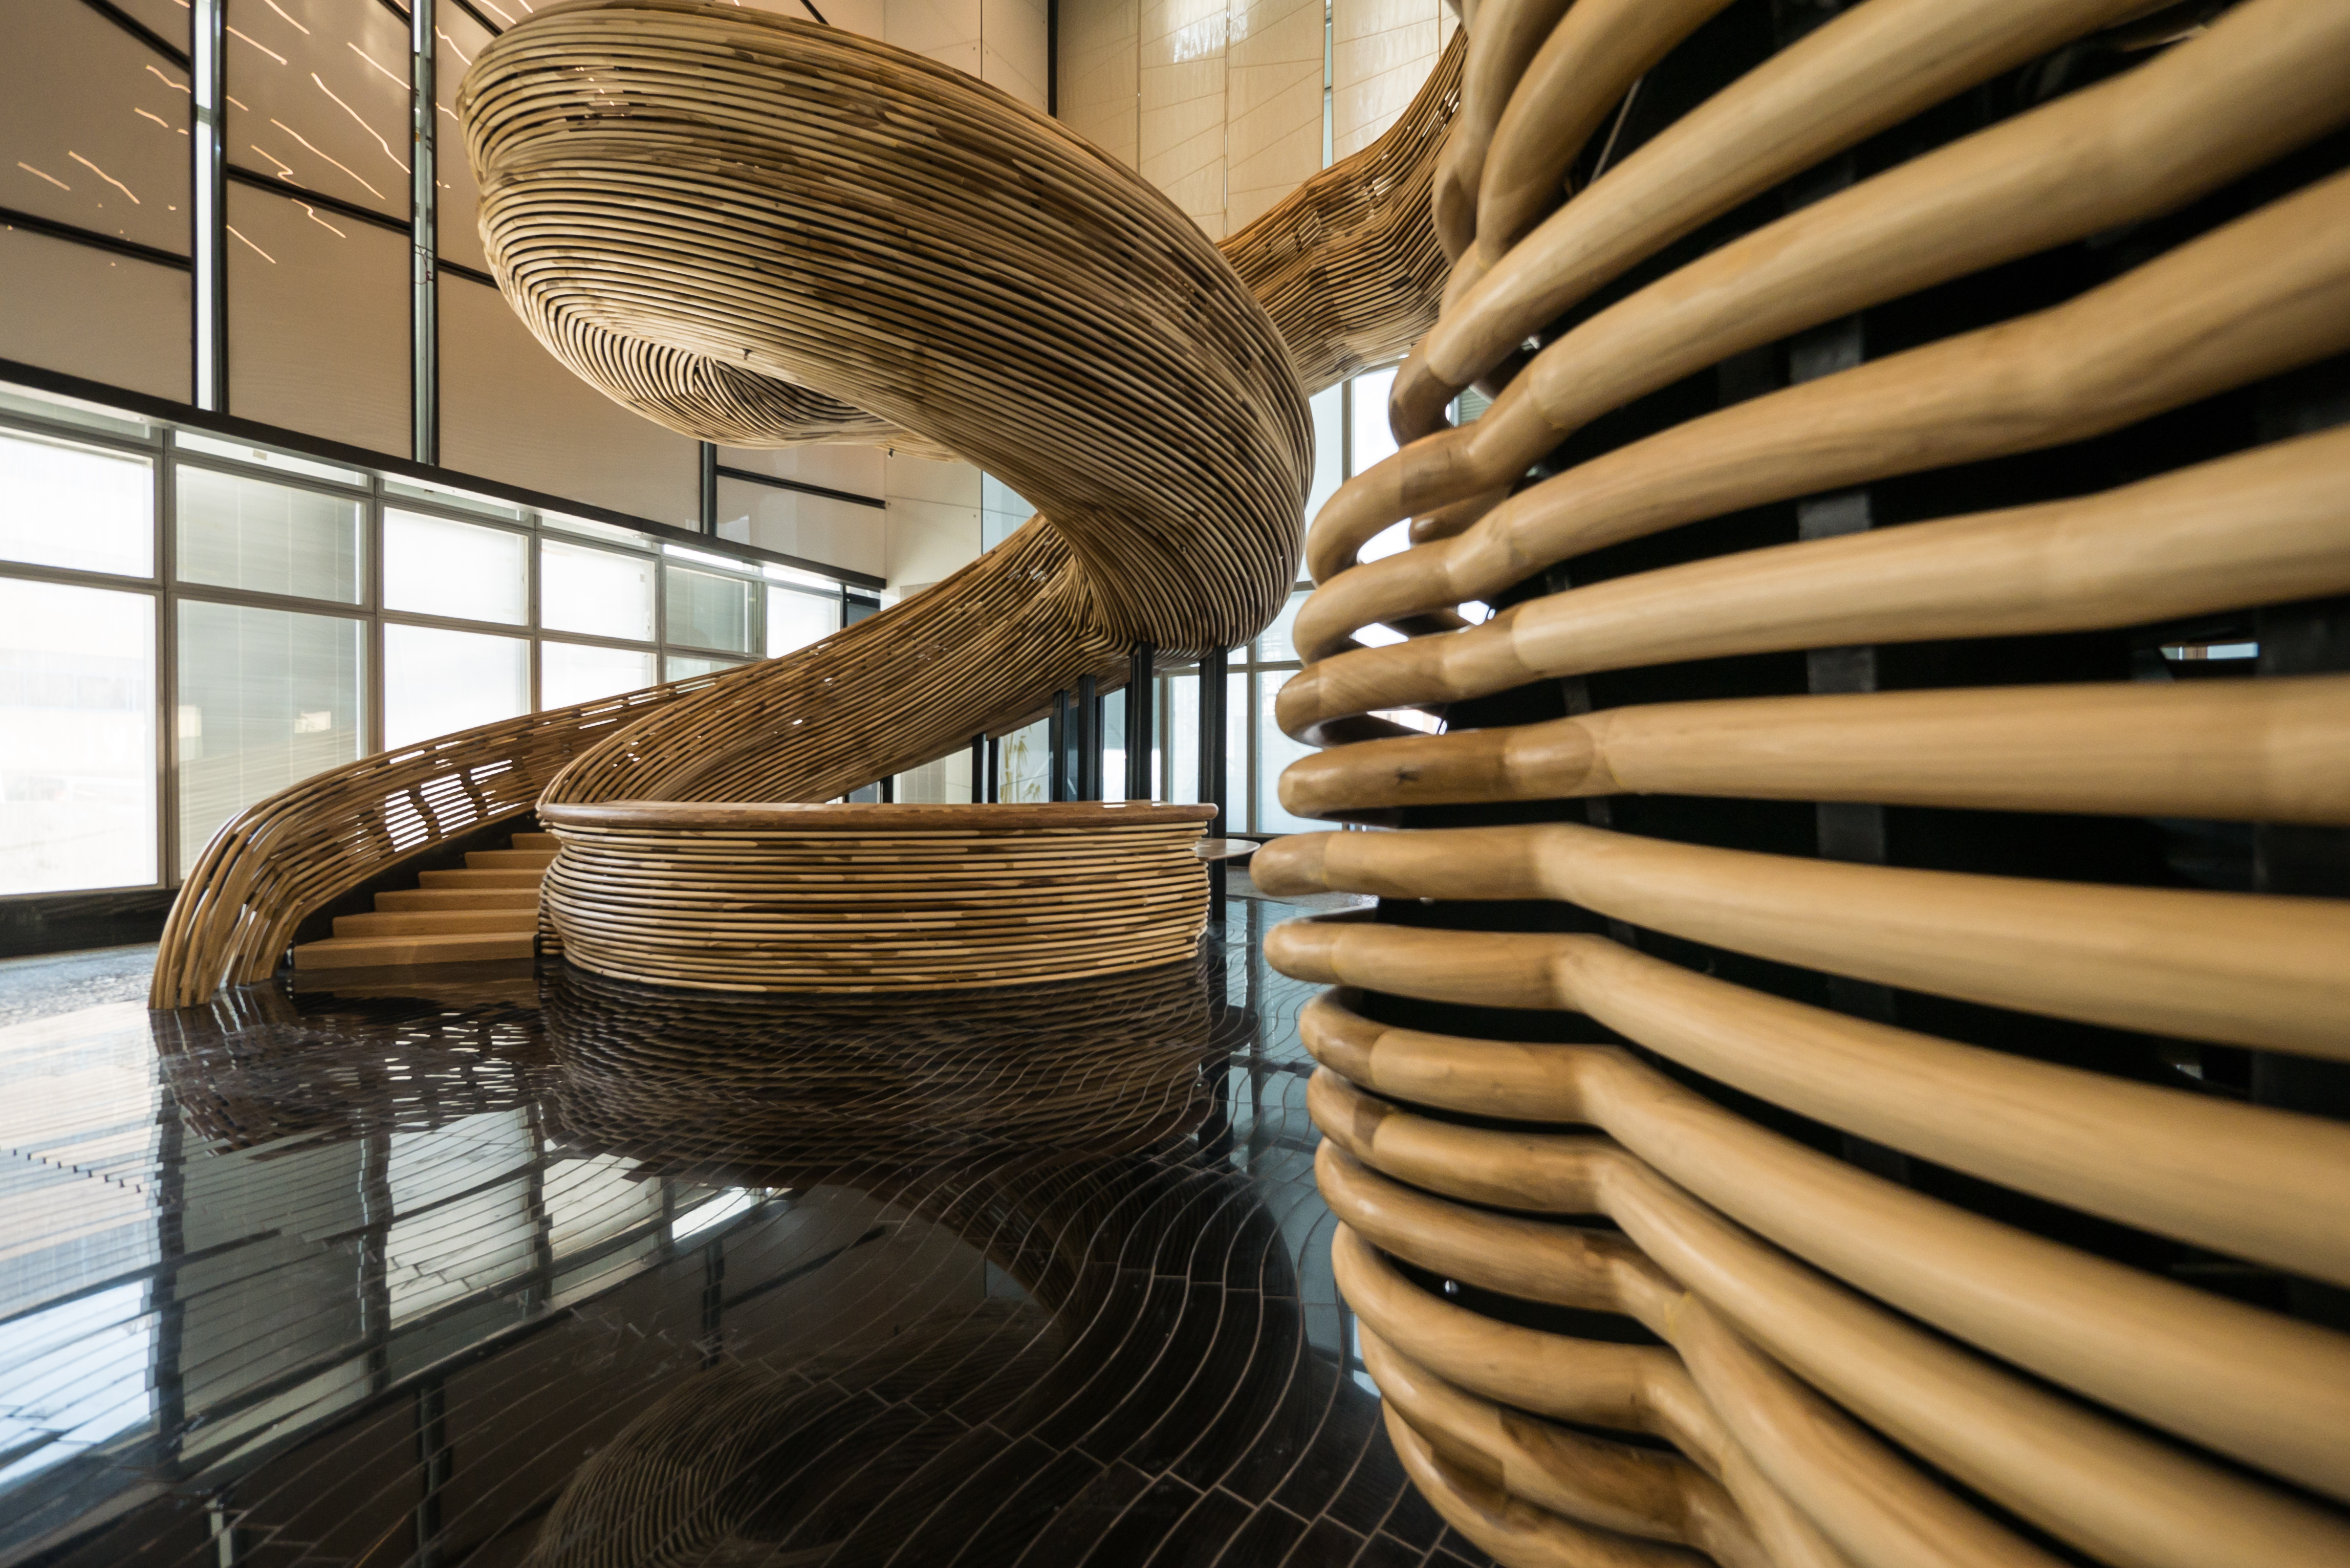 3a. Photography by ITAY SIKOLSKI - The reception desk was conceived as the starting point for the spiraling wooden sculpture, completed with the same wooden profiles as the railings(2)